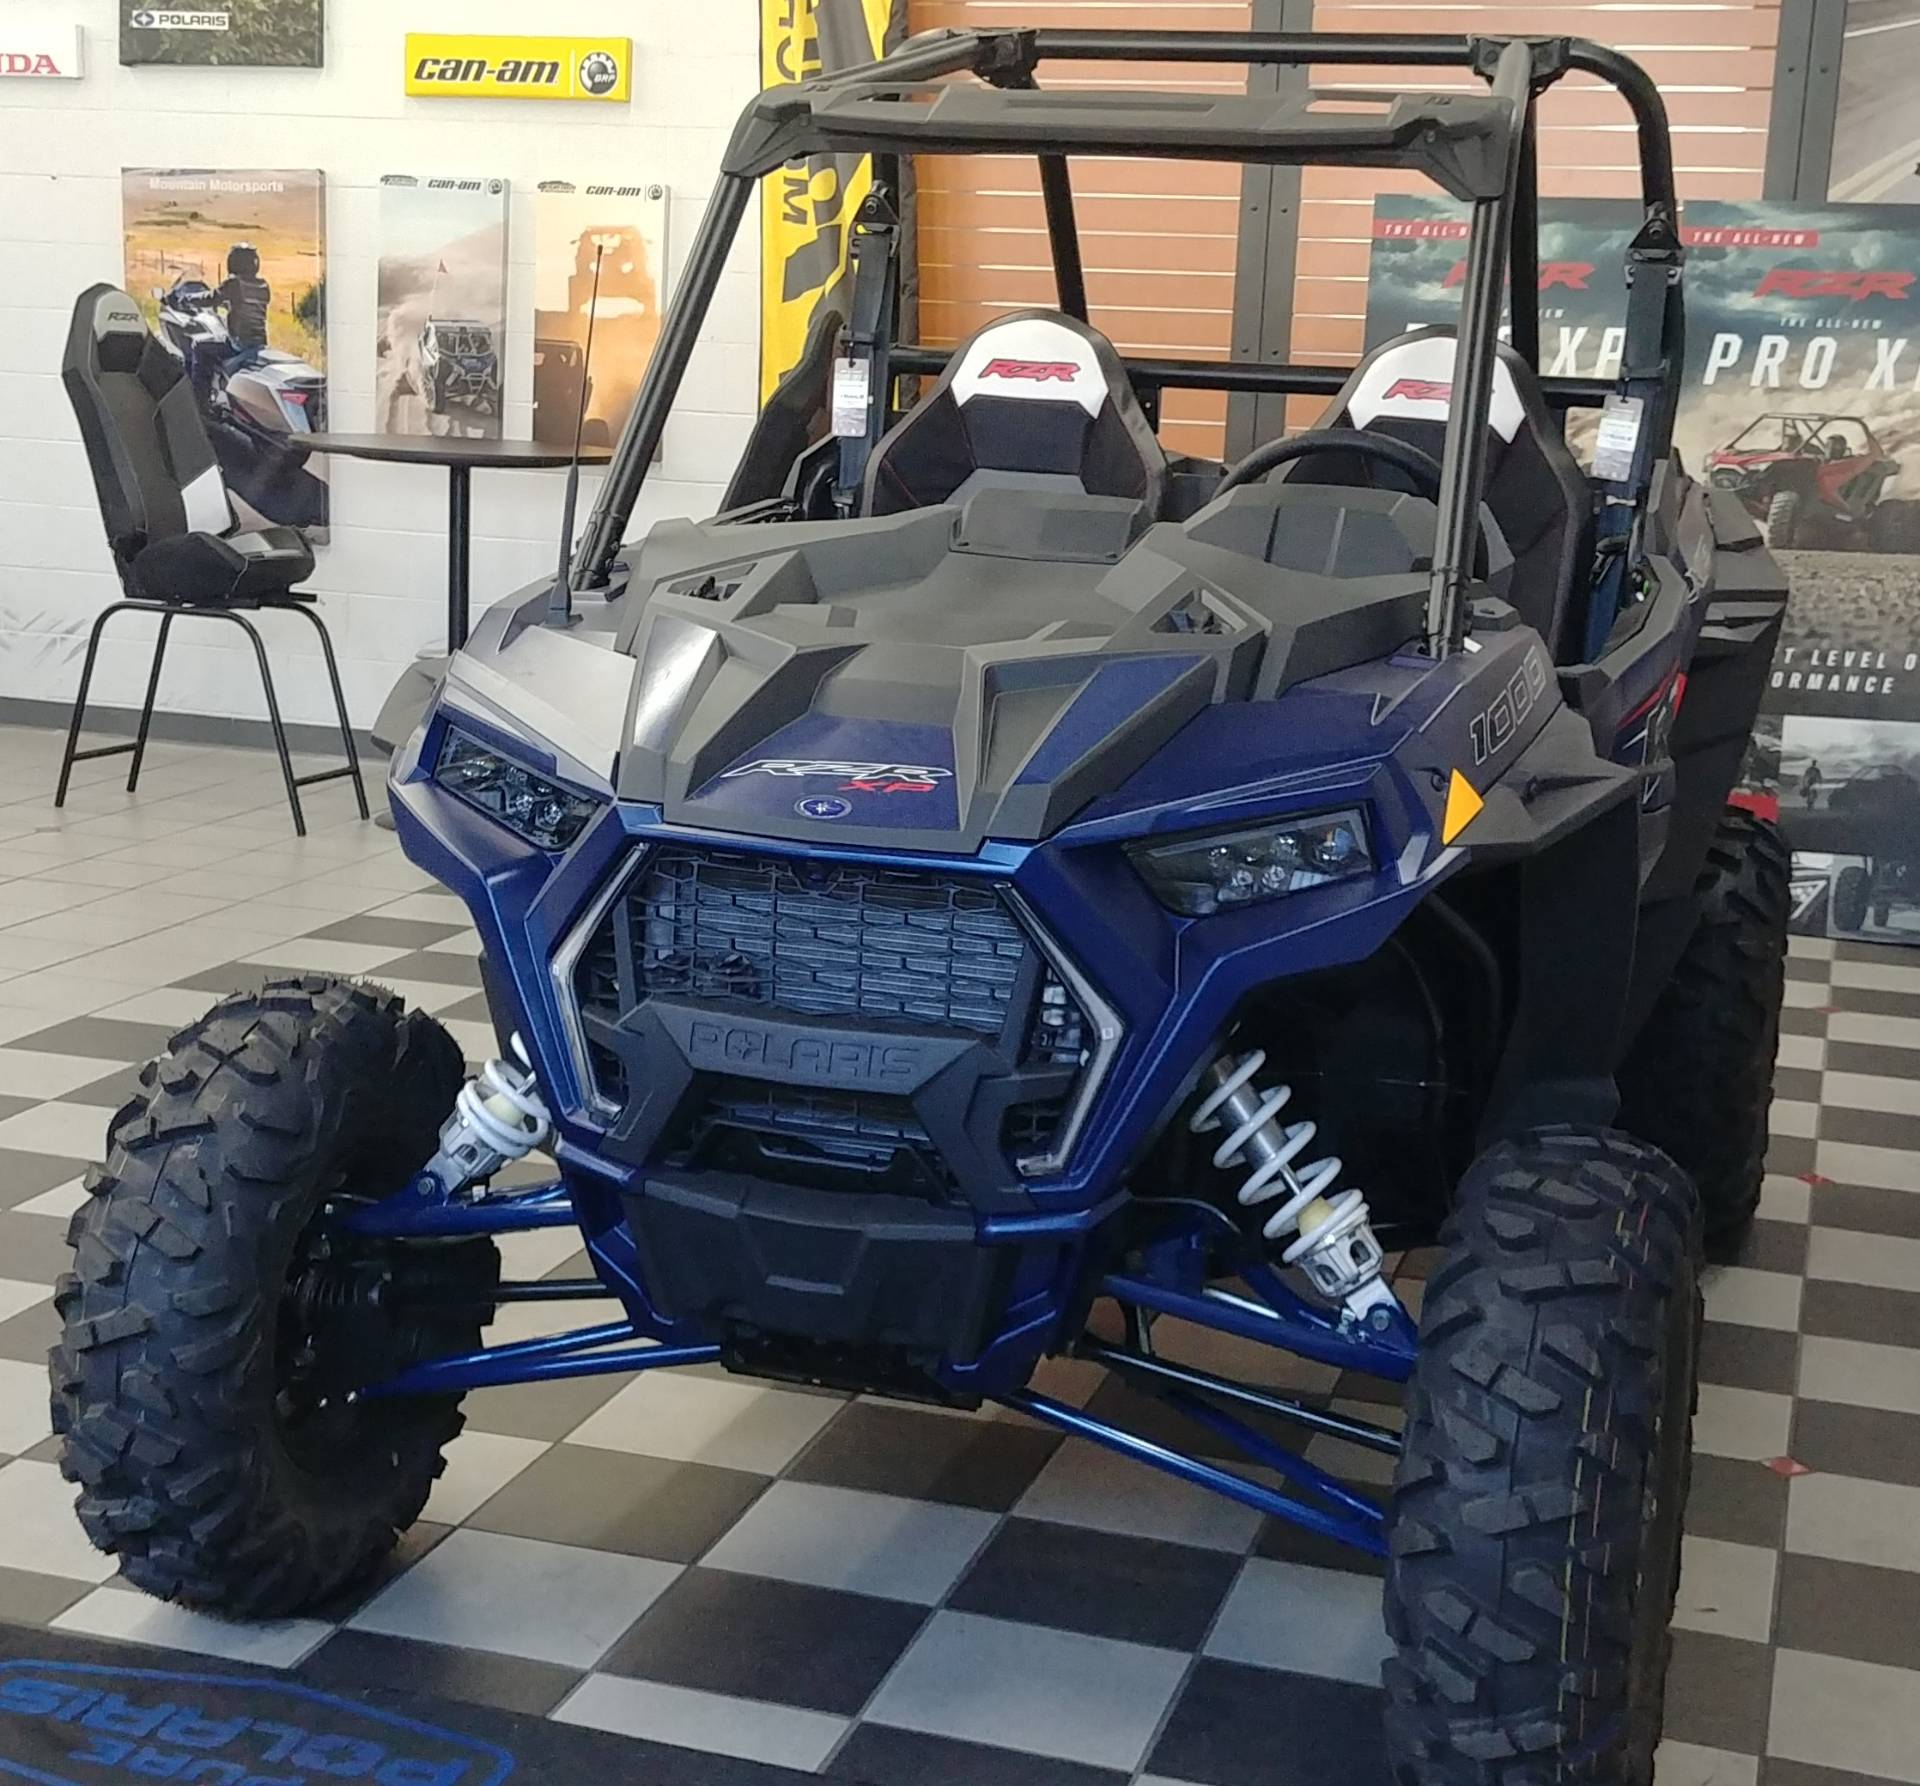 2021 Polaris RZR XP 1000 Premium in Ontario, California - Photo 8